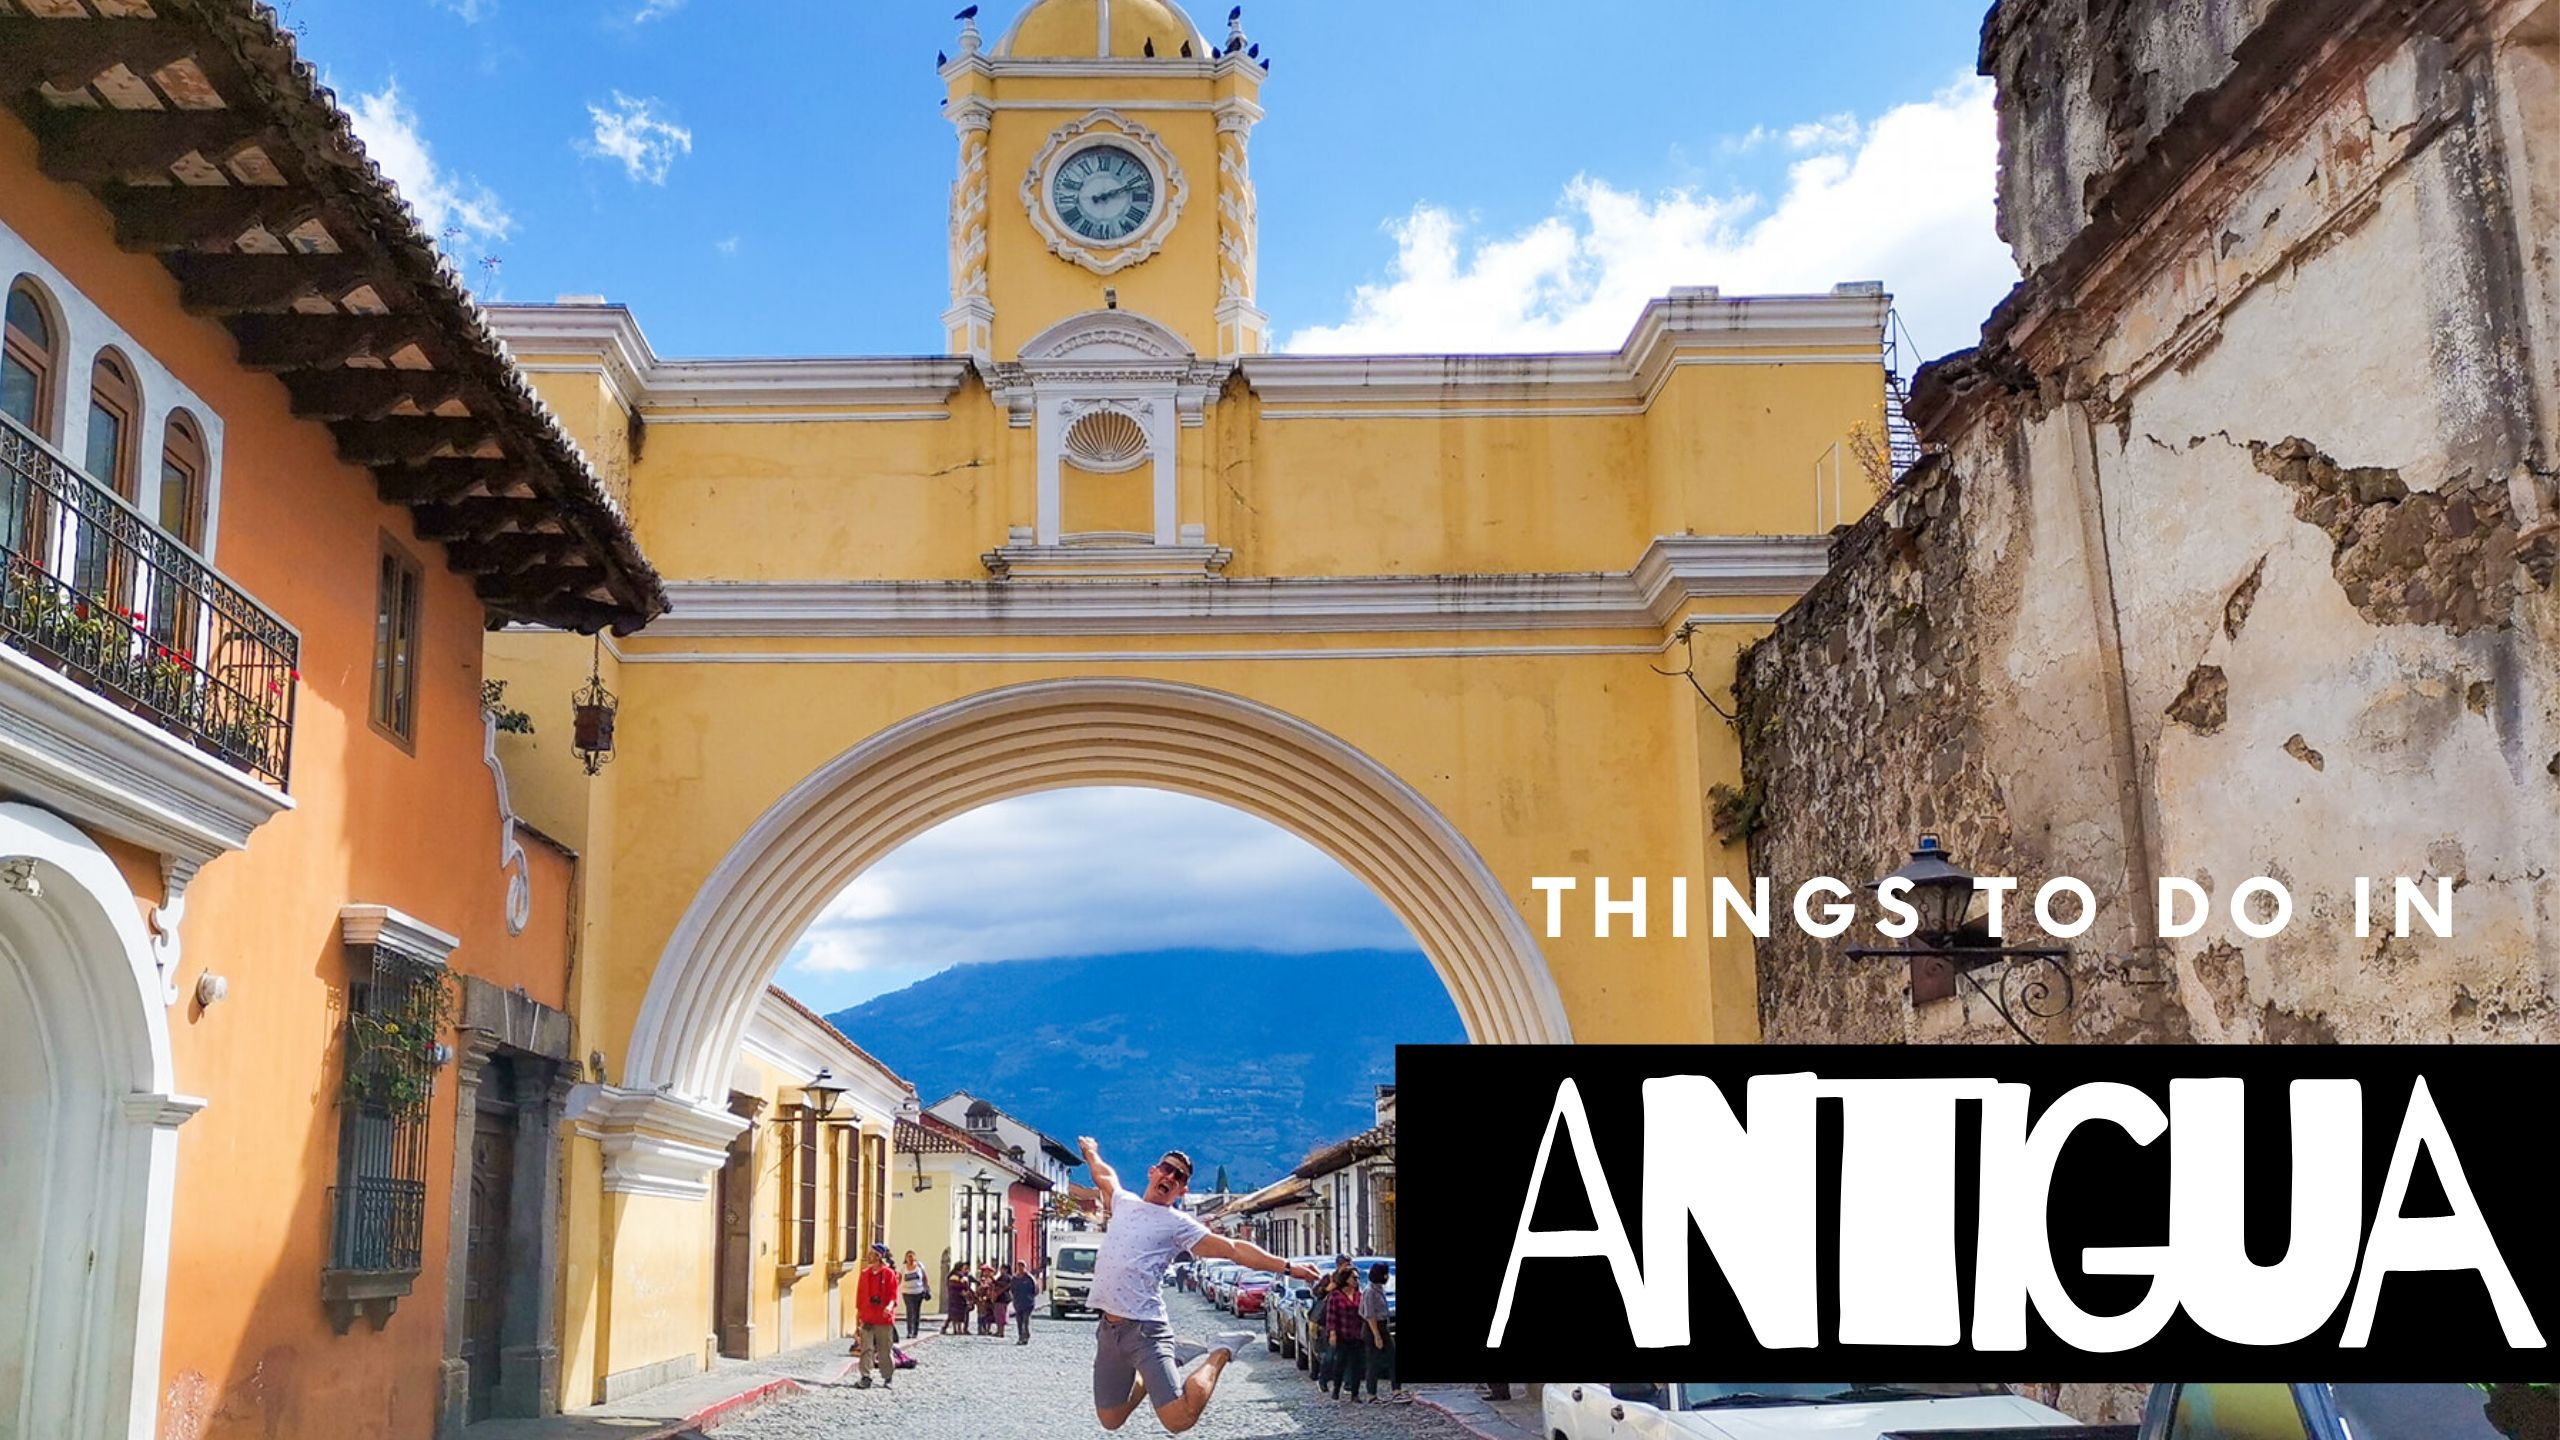 Things to do in Antigua Guatemala